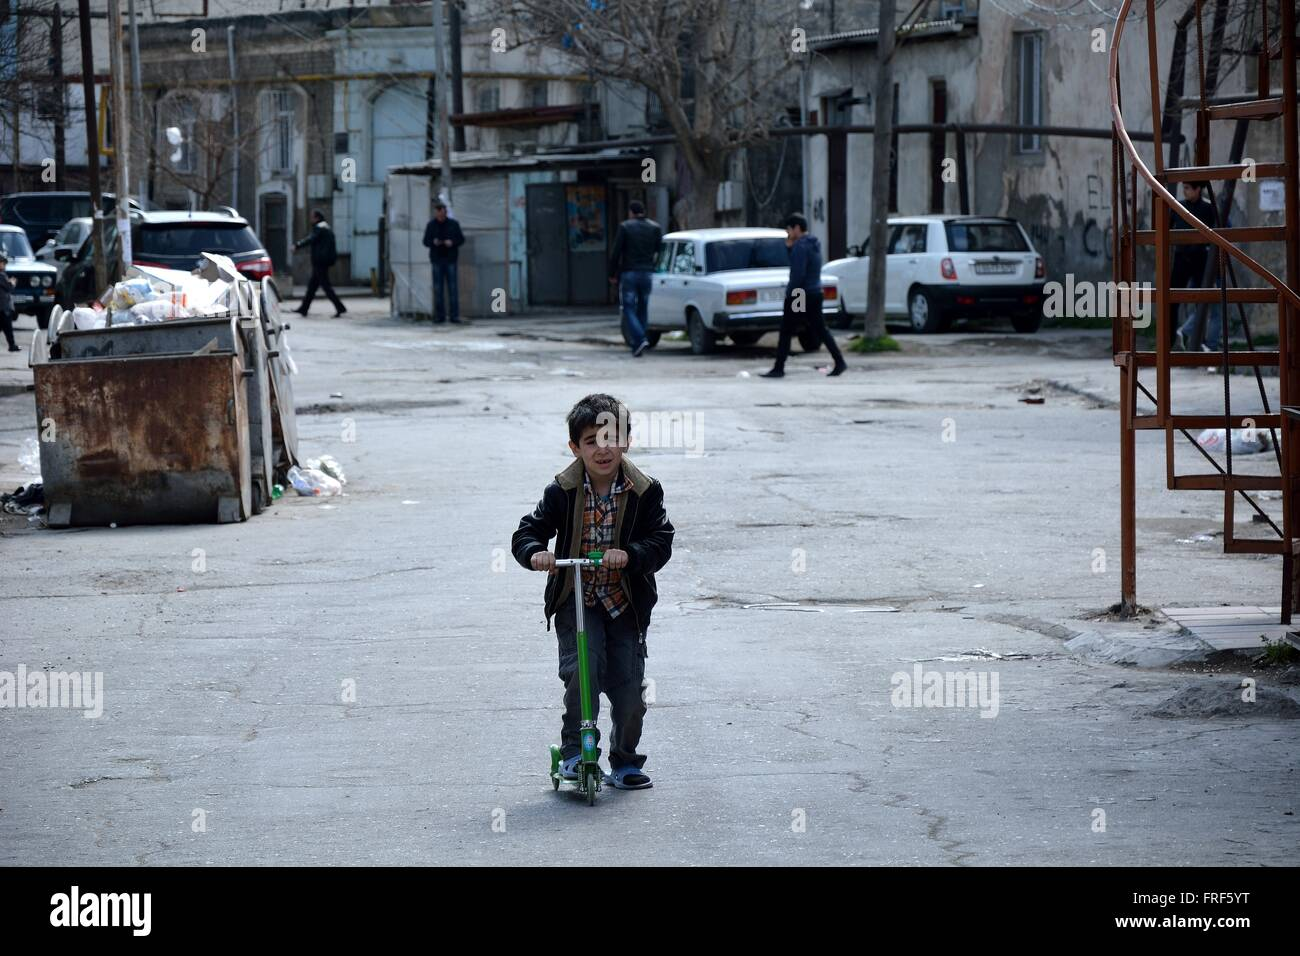 BAKU, AZERBAIJAN - MARCH 19 2014 Young boy on a scooter in Sovietskaya, a poor and unmodernised part of Baku, capital - Stock Image